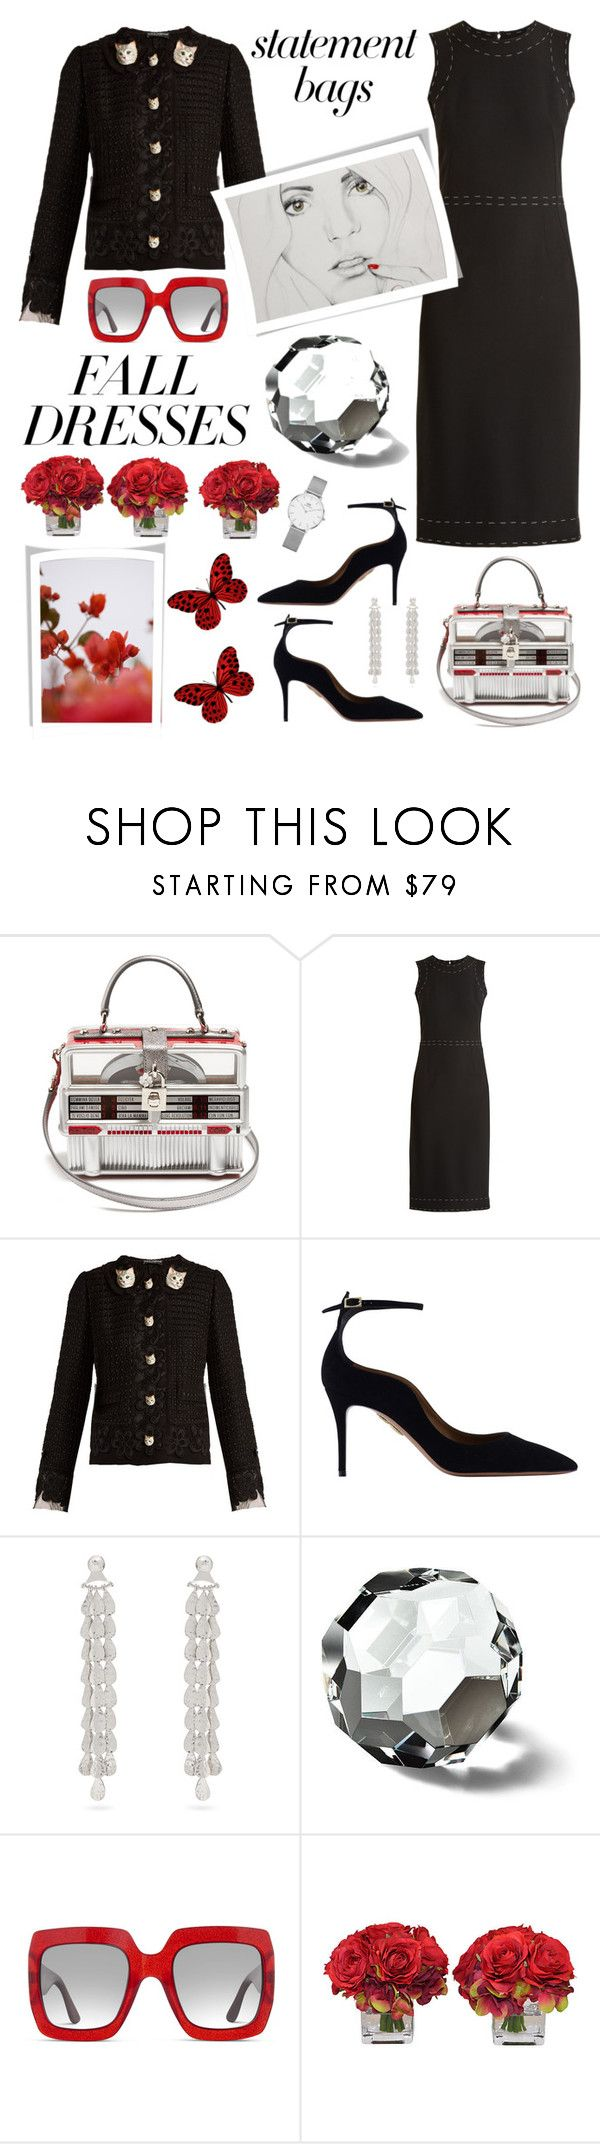 """Statement Bag"" by sukia ❤ liked on Polyvore featuring Dolce&Gabbana, Dolce Vita, Sophia Kokosalaki, Ralph Lauren, Gucci, The French Bee, Daniel Wellington and GUINEVERE"